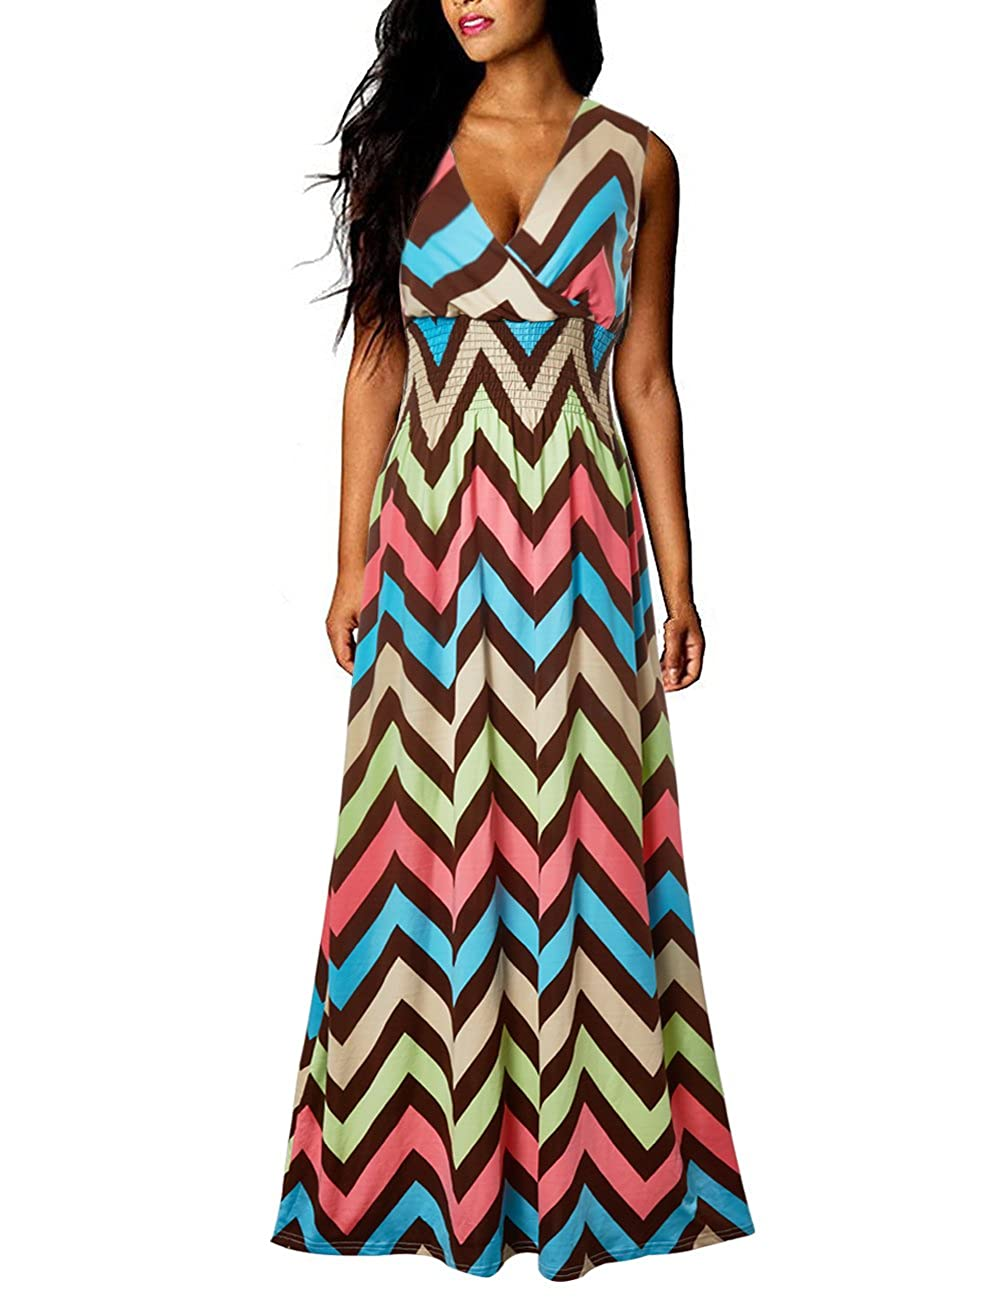 Tr/ès Chic Mailanda Sommerkleid Damen Partykleid Lang Chiffon High Waist Striped Sleeveless Beach Kleid Elegant